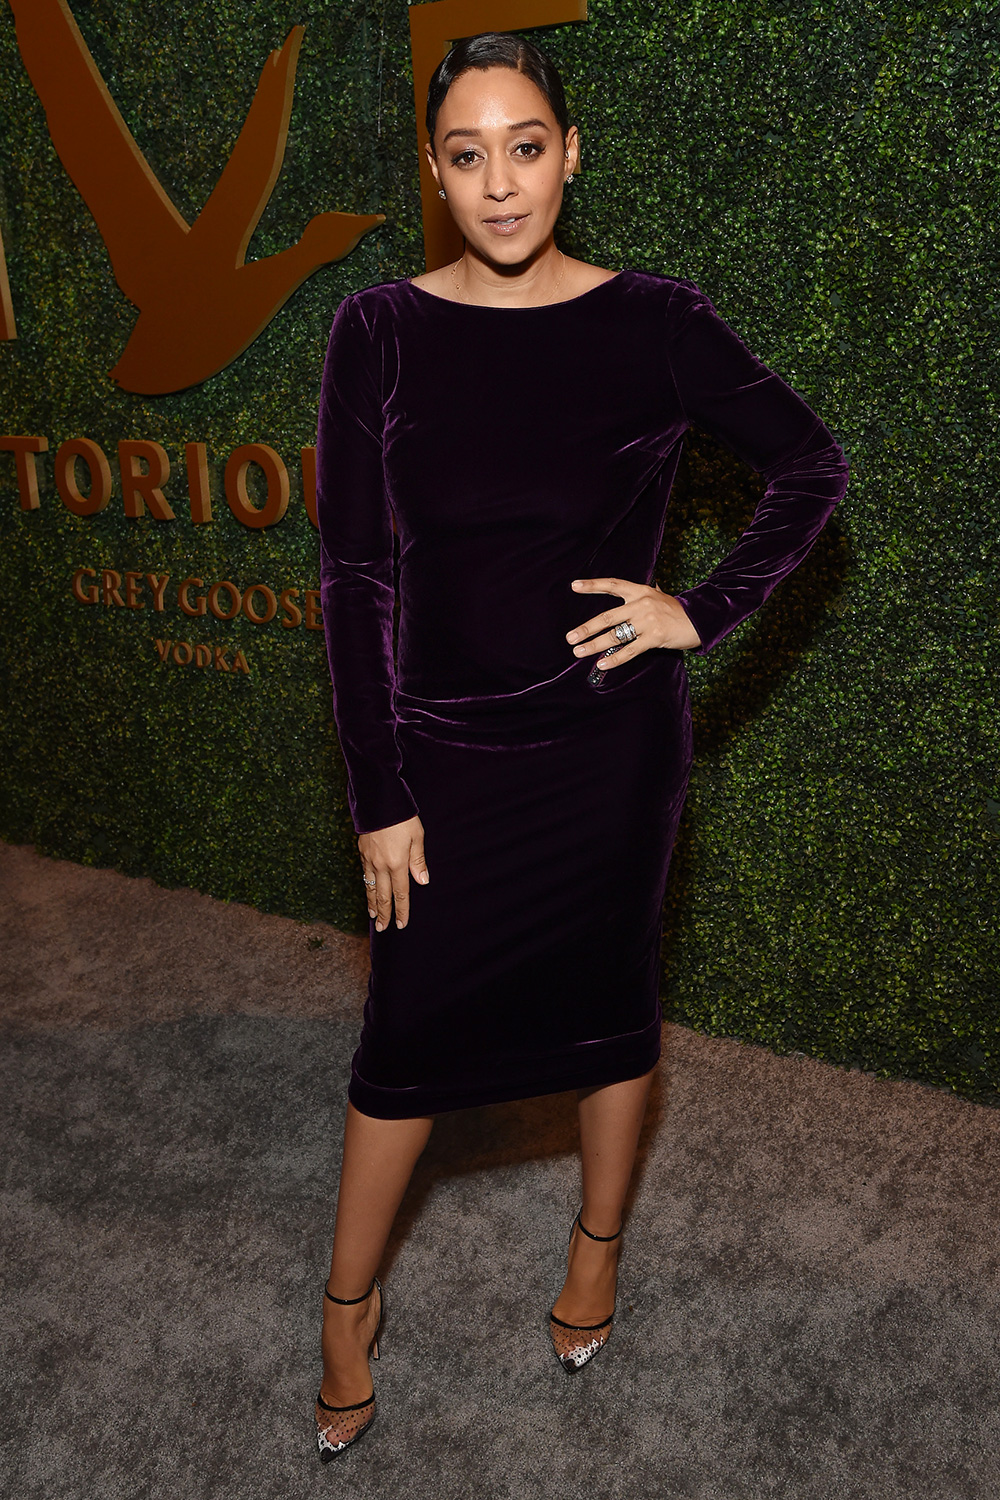 Tia Mowry attends Grey Goose Toasts To A Year Of Victorious Filmmaking at The MACRO Pre-Oscars Party at Fig & Olive on February 06, 2020 in West Hollywood, California